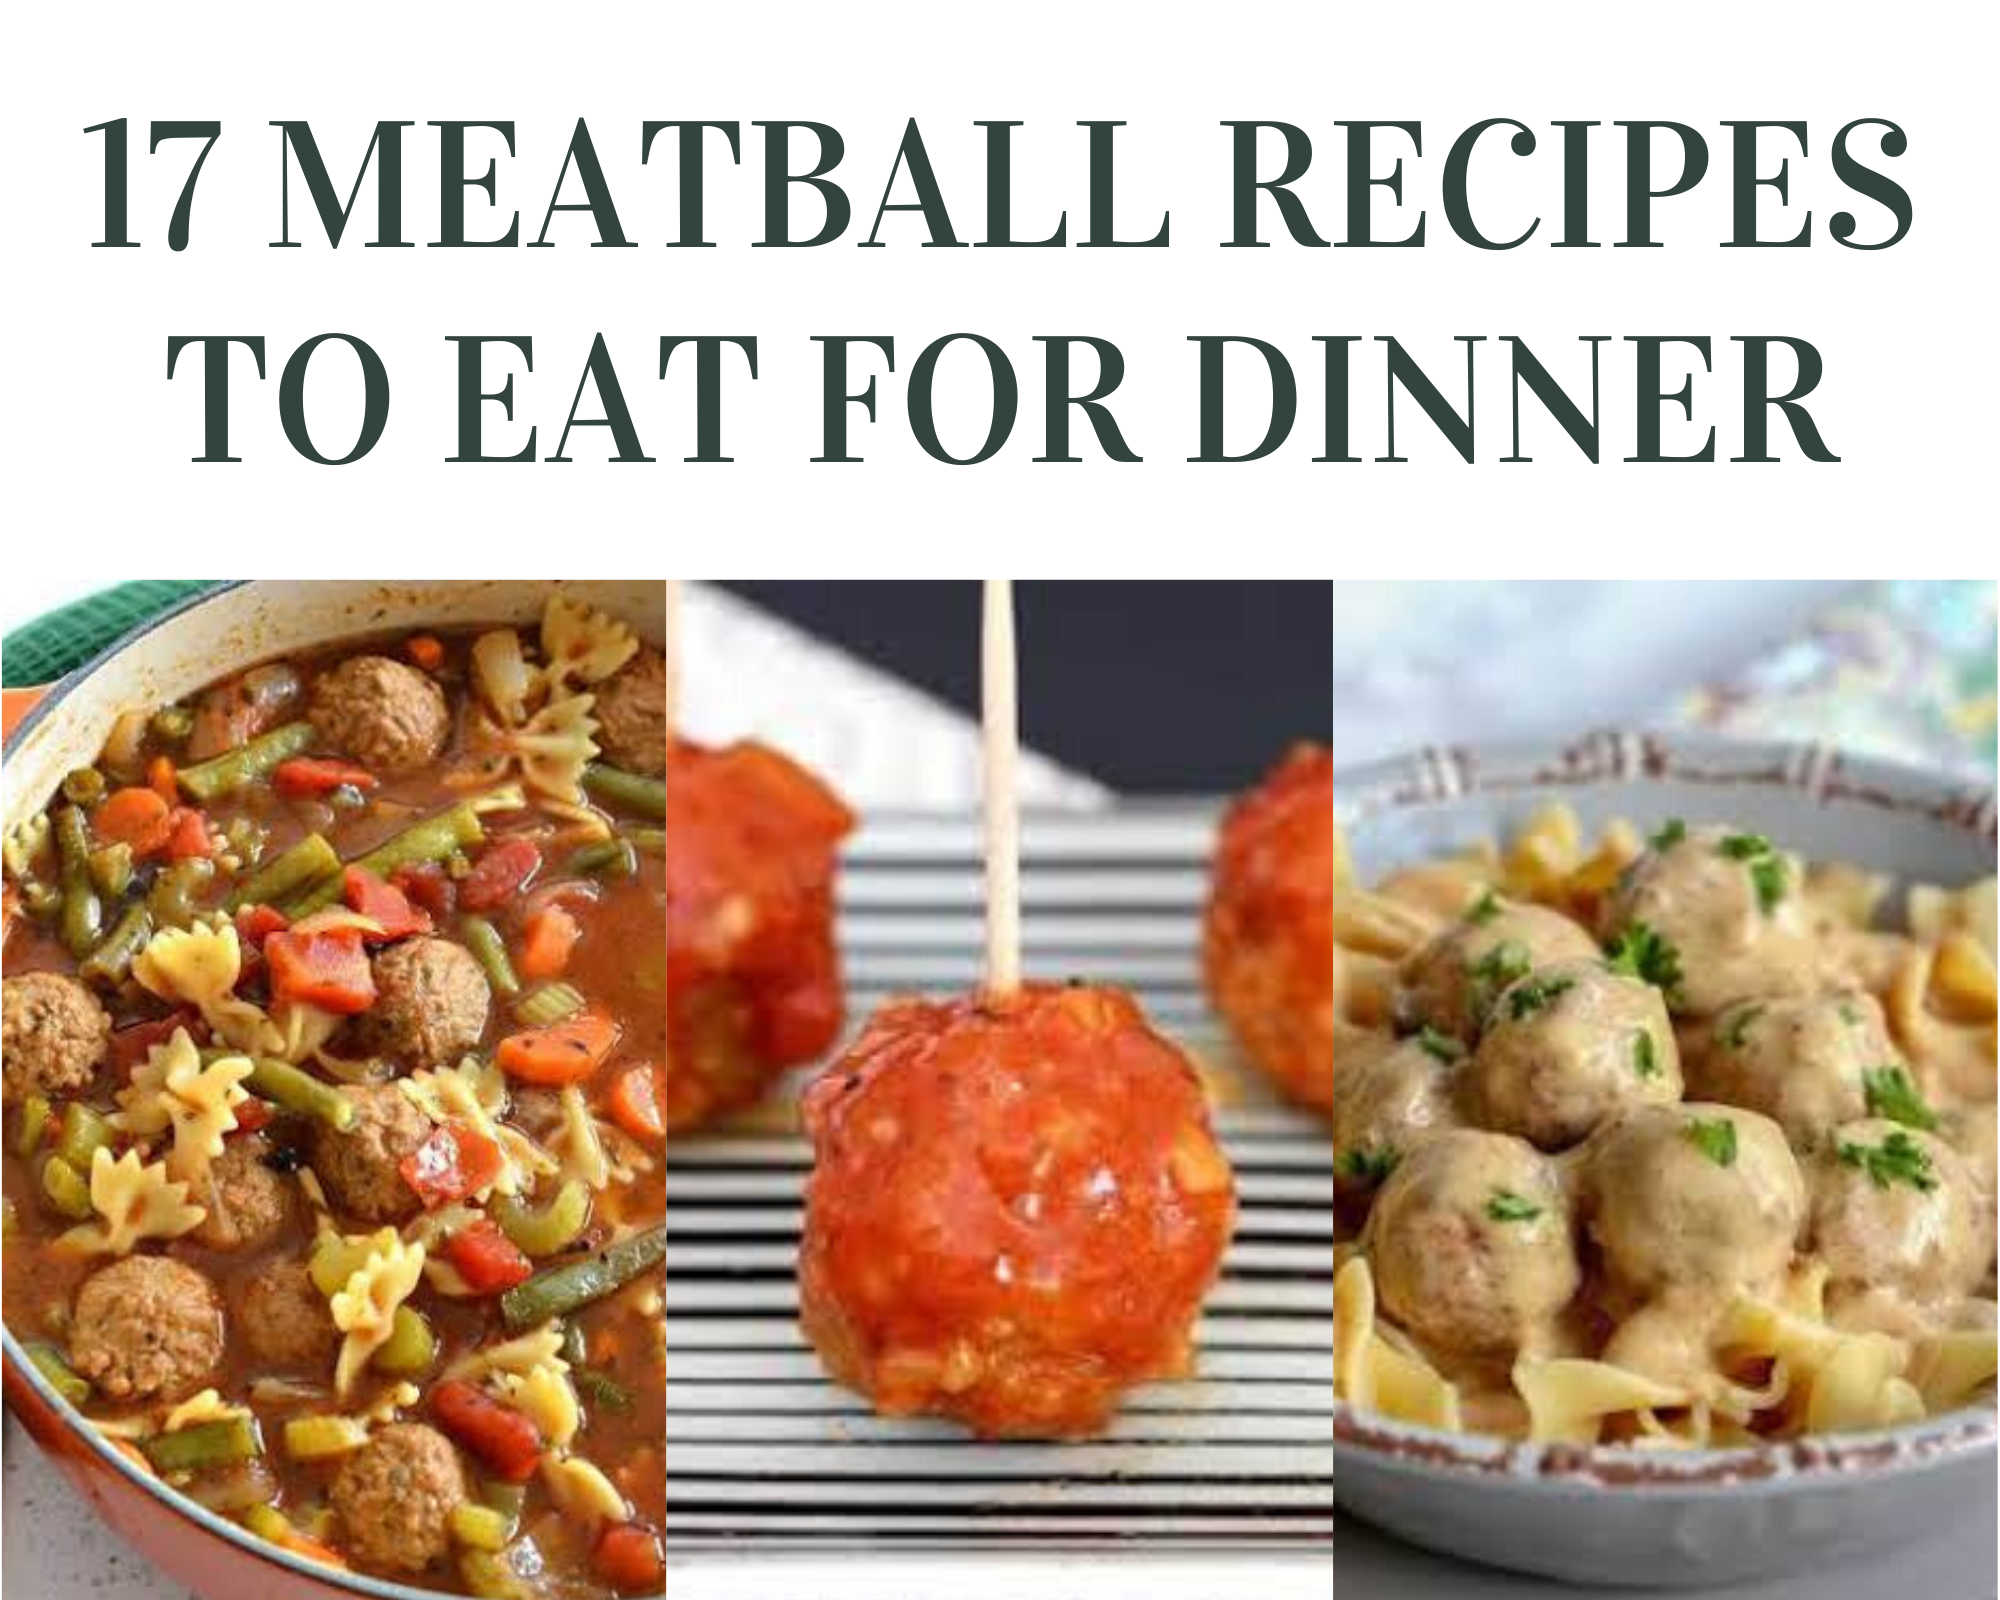 17 meatball recipes